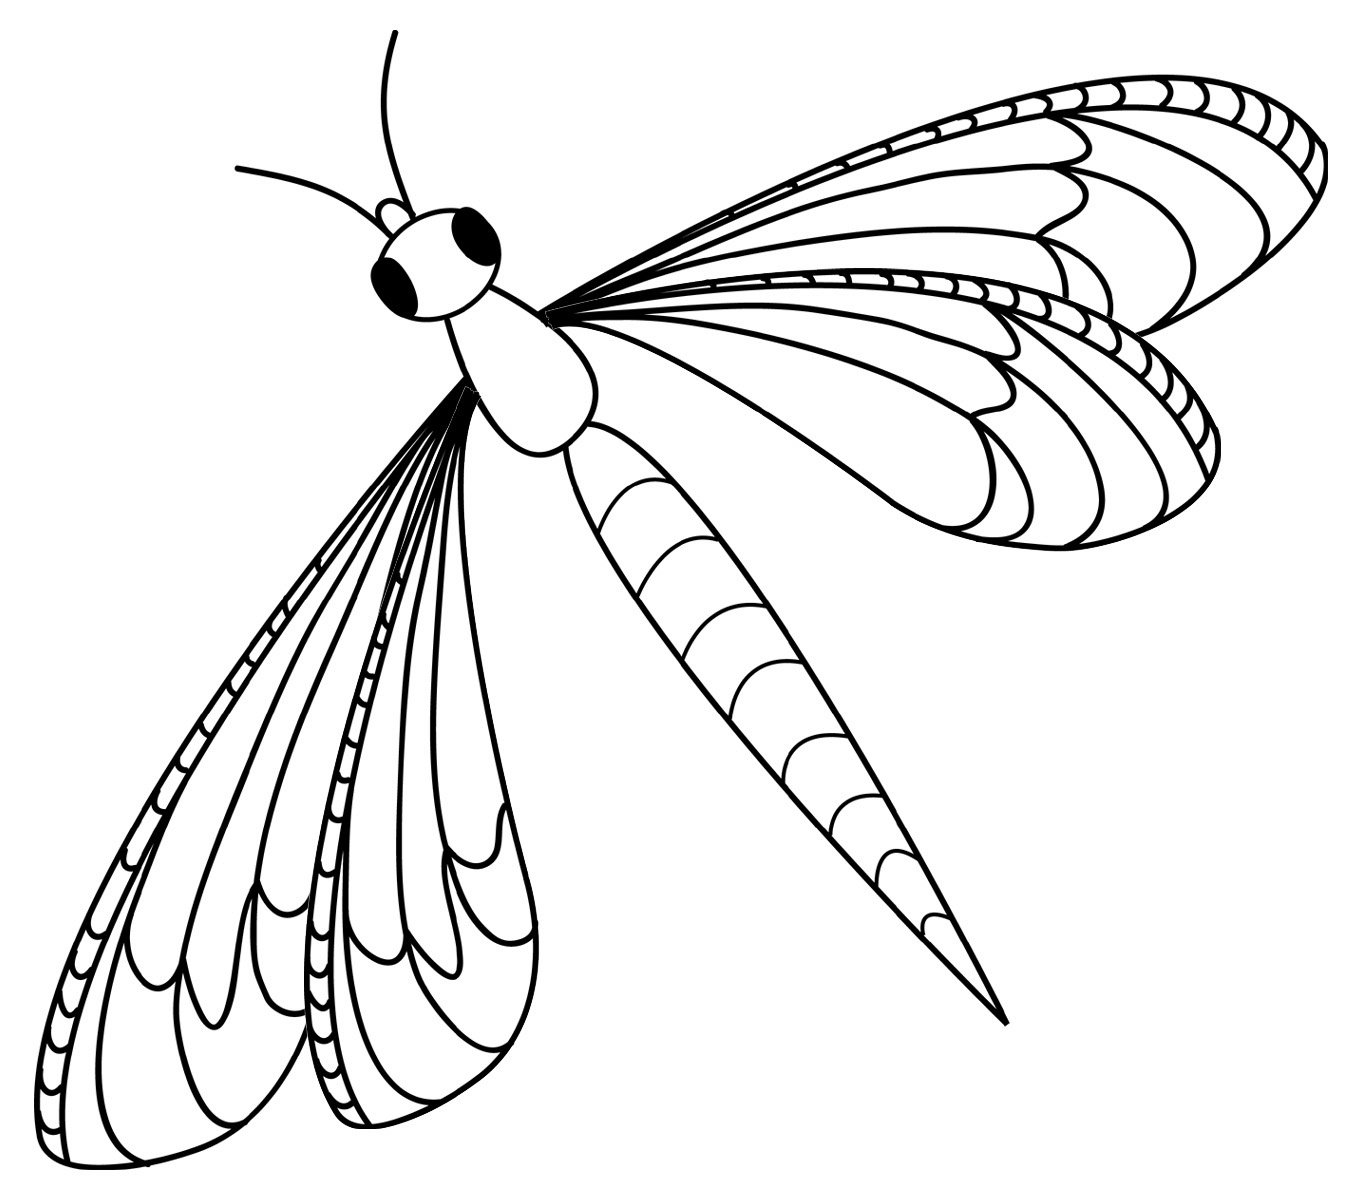 Free Printable Dragonfly Coloring Pages For Kids - Free Printable Pictures Of Dragonflies